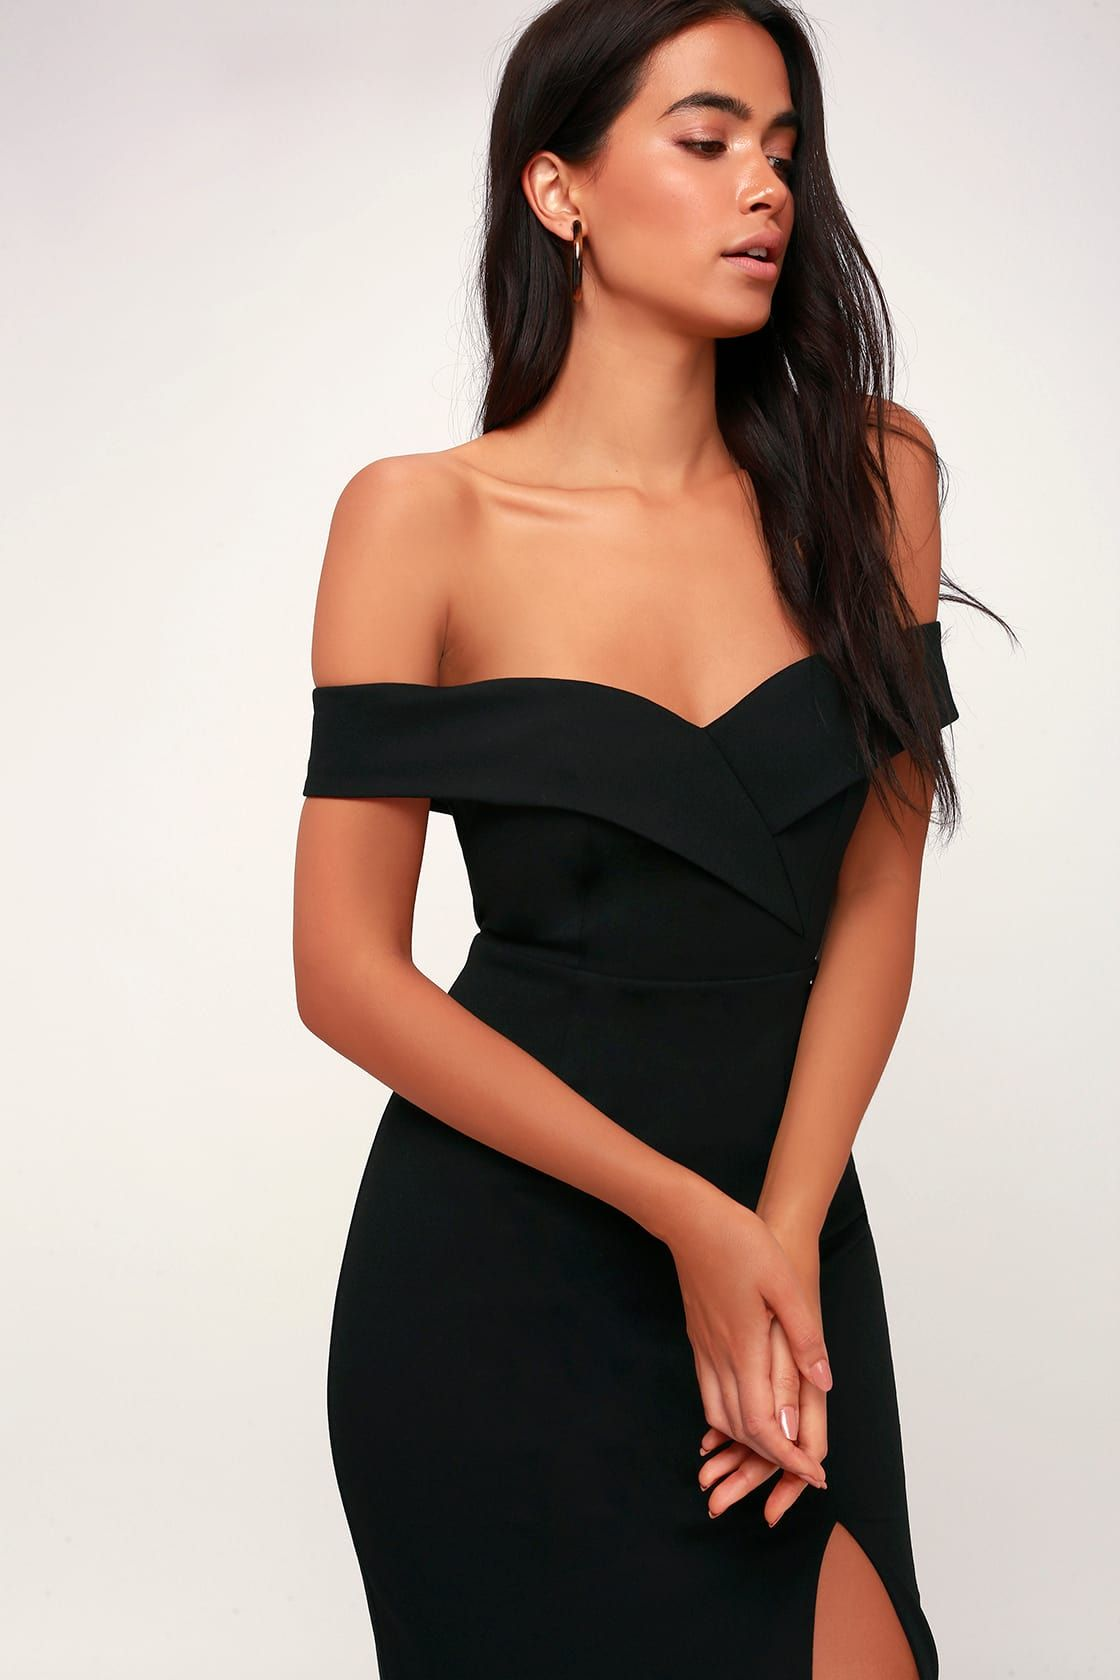 Classic Glam Black Off The Shoulder Bodycon Dress Chic Black Dress Midi Dress Bodycon Bodycon Dress [ 1680 x 1120 Pixel ]